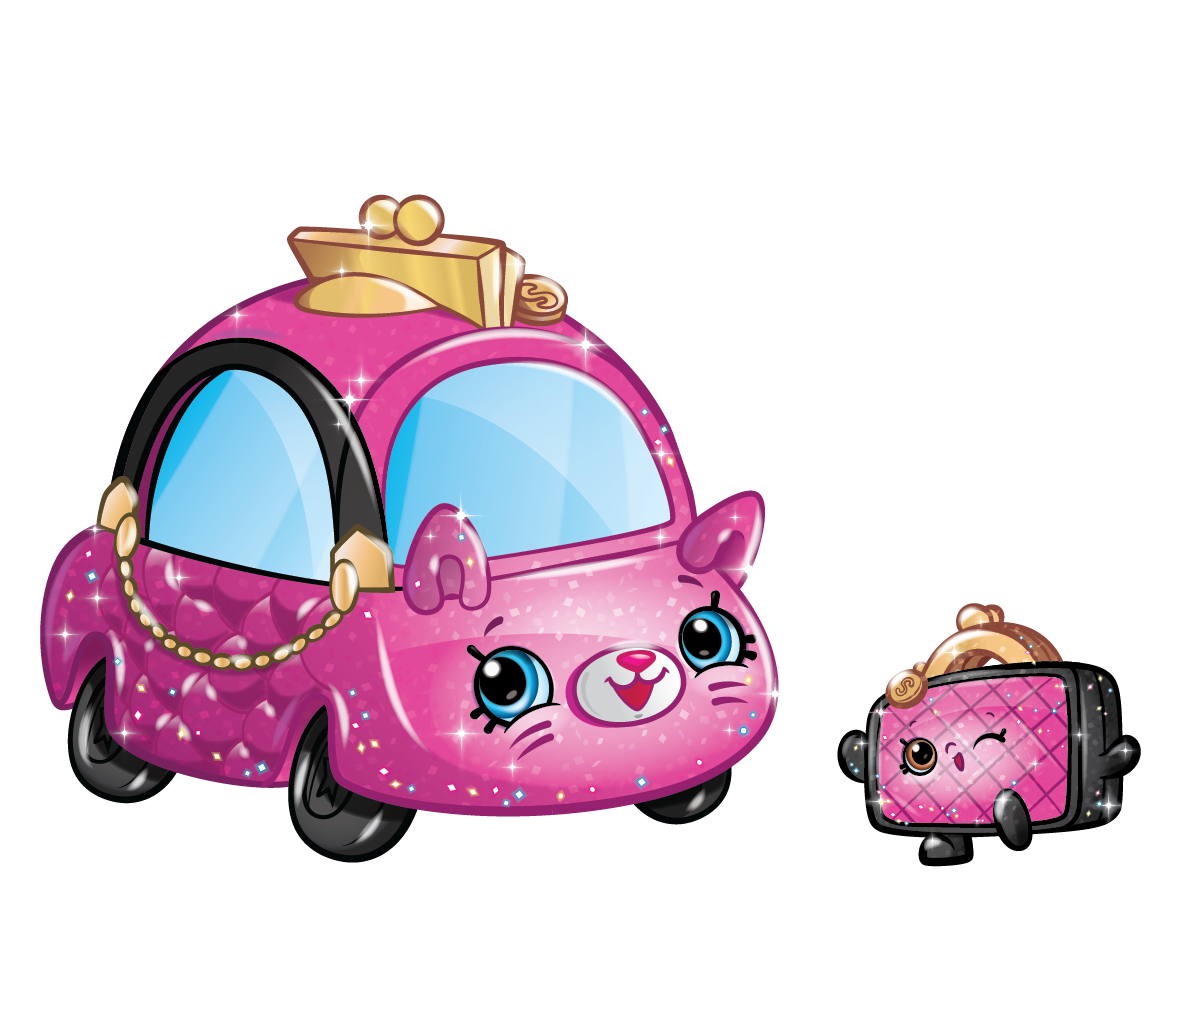 Buggy car clipart royalty free library Cutie Cars Characters - Meet Your Favourite Cutie Cars Characters royalty free library